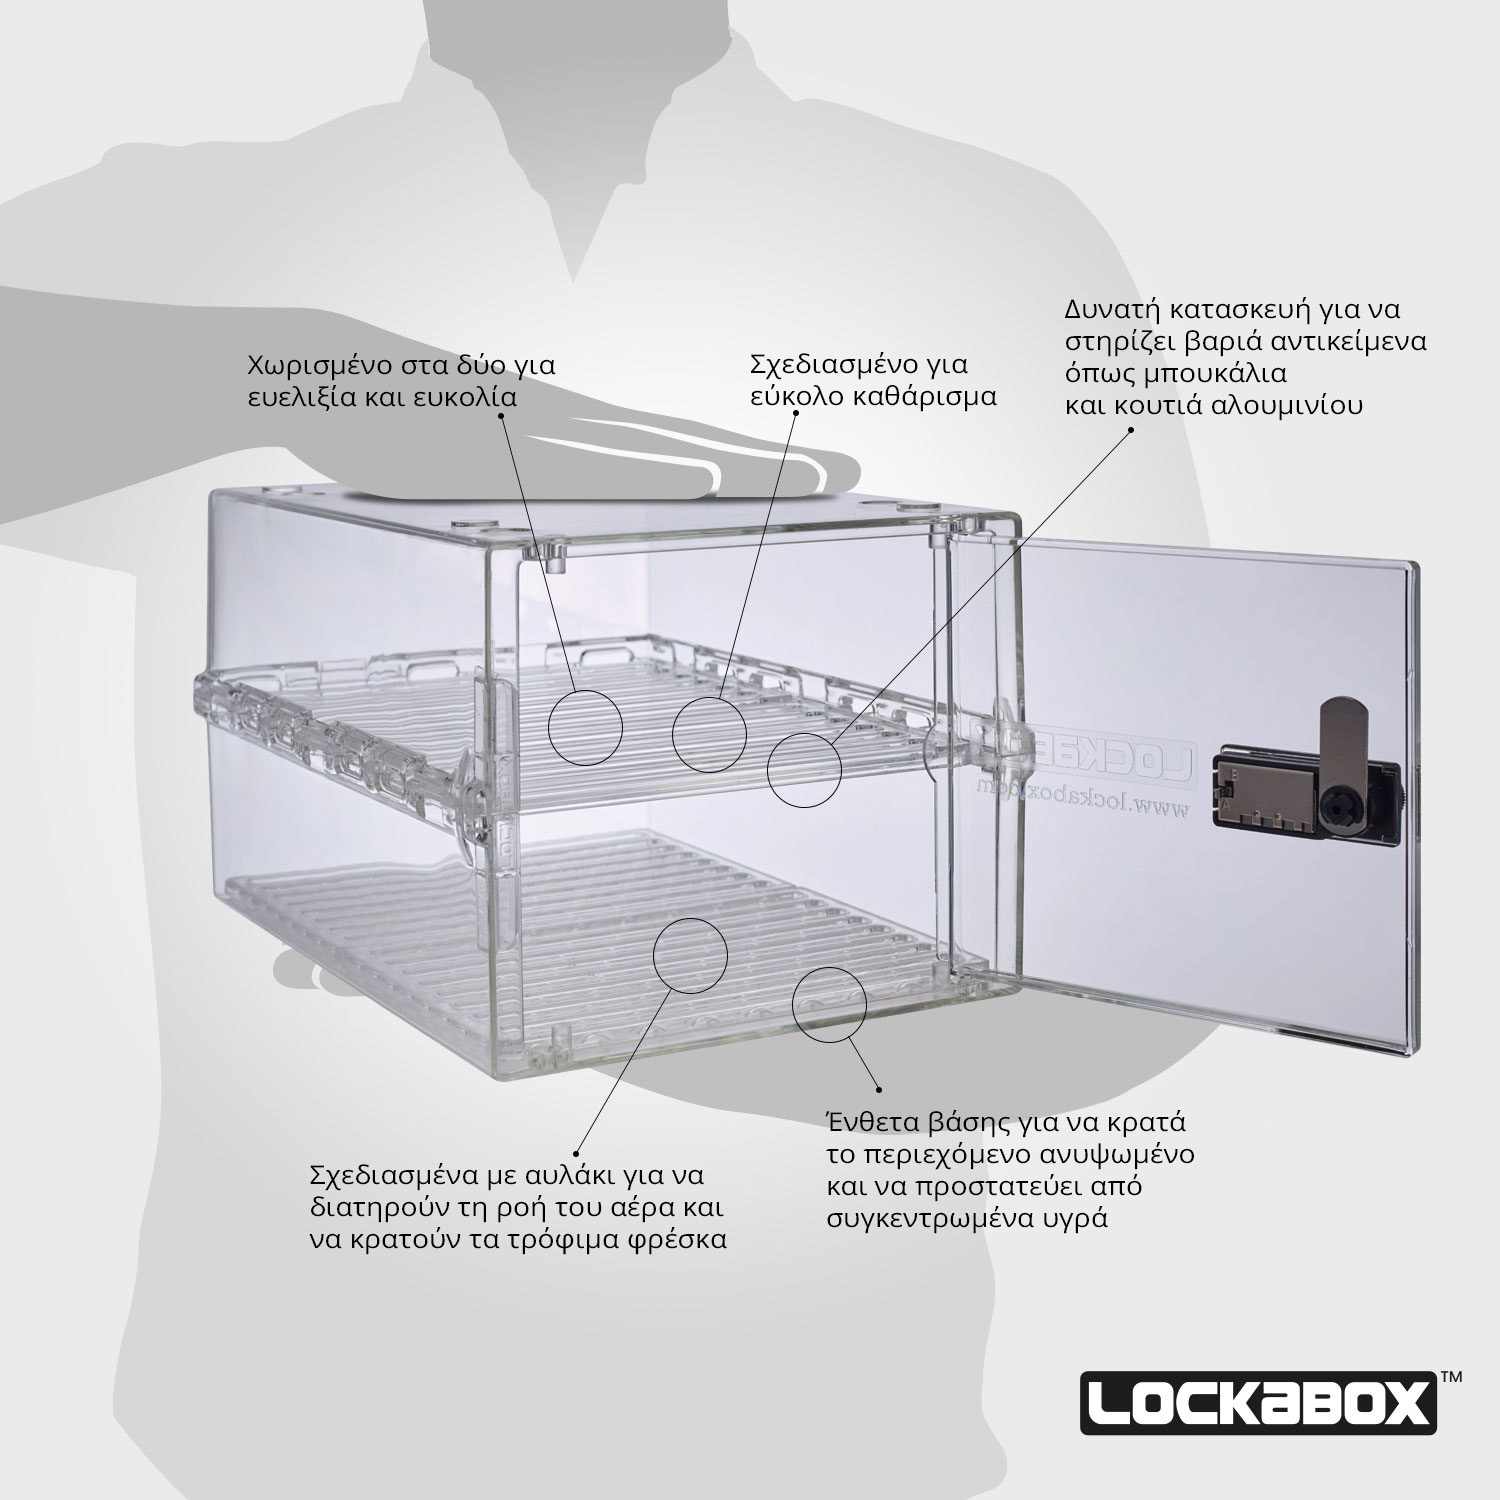 Lockabox-Amazon-Size-Guide-Features-Shelf-Greek-1500×1500